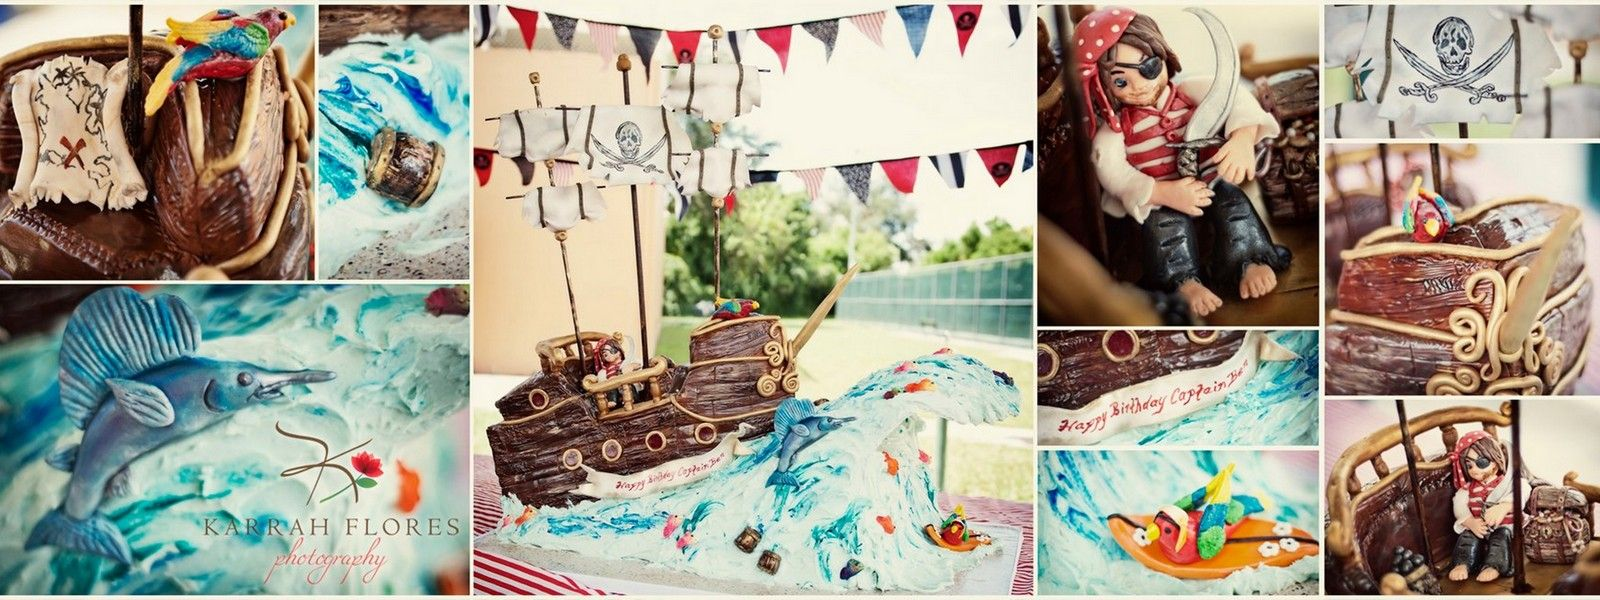 A pirate ship sailing on an ocean wave with colorful fish, parrots, treasure and the cutest little pirate- all for Bens 4th Birthday! Photography courtesy of Karrah Flores Photograpy (www.facebook.com/karrahflores) who is also the Birthday boys Mommy!